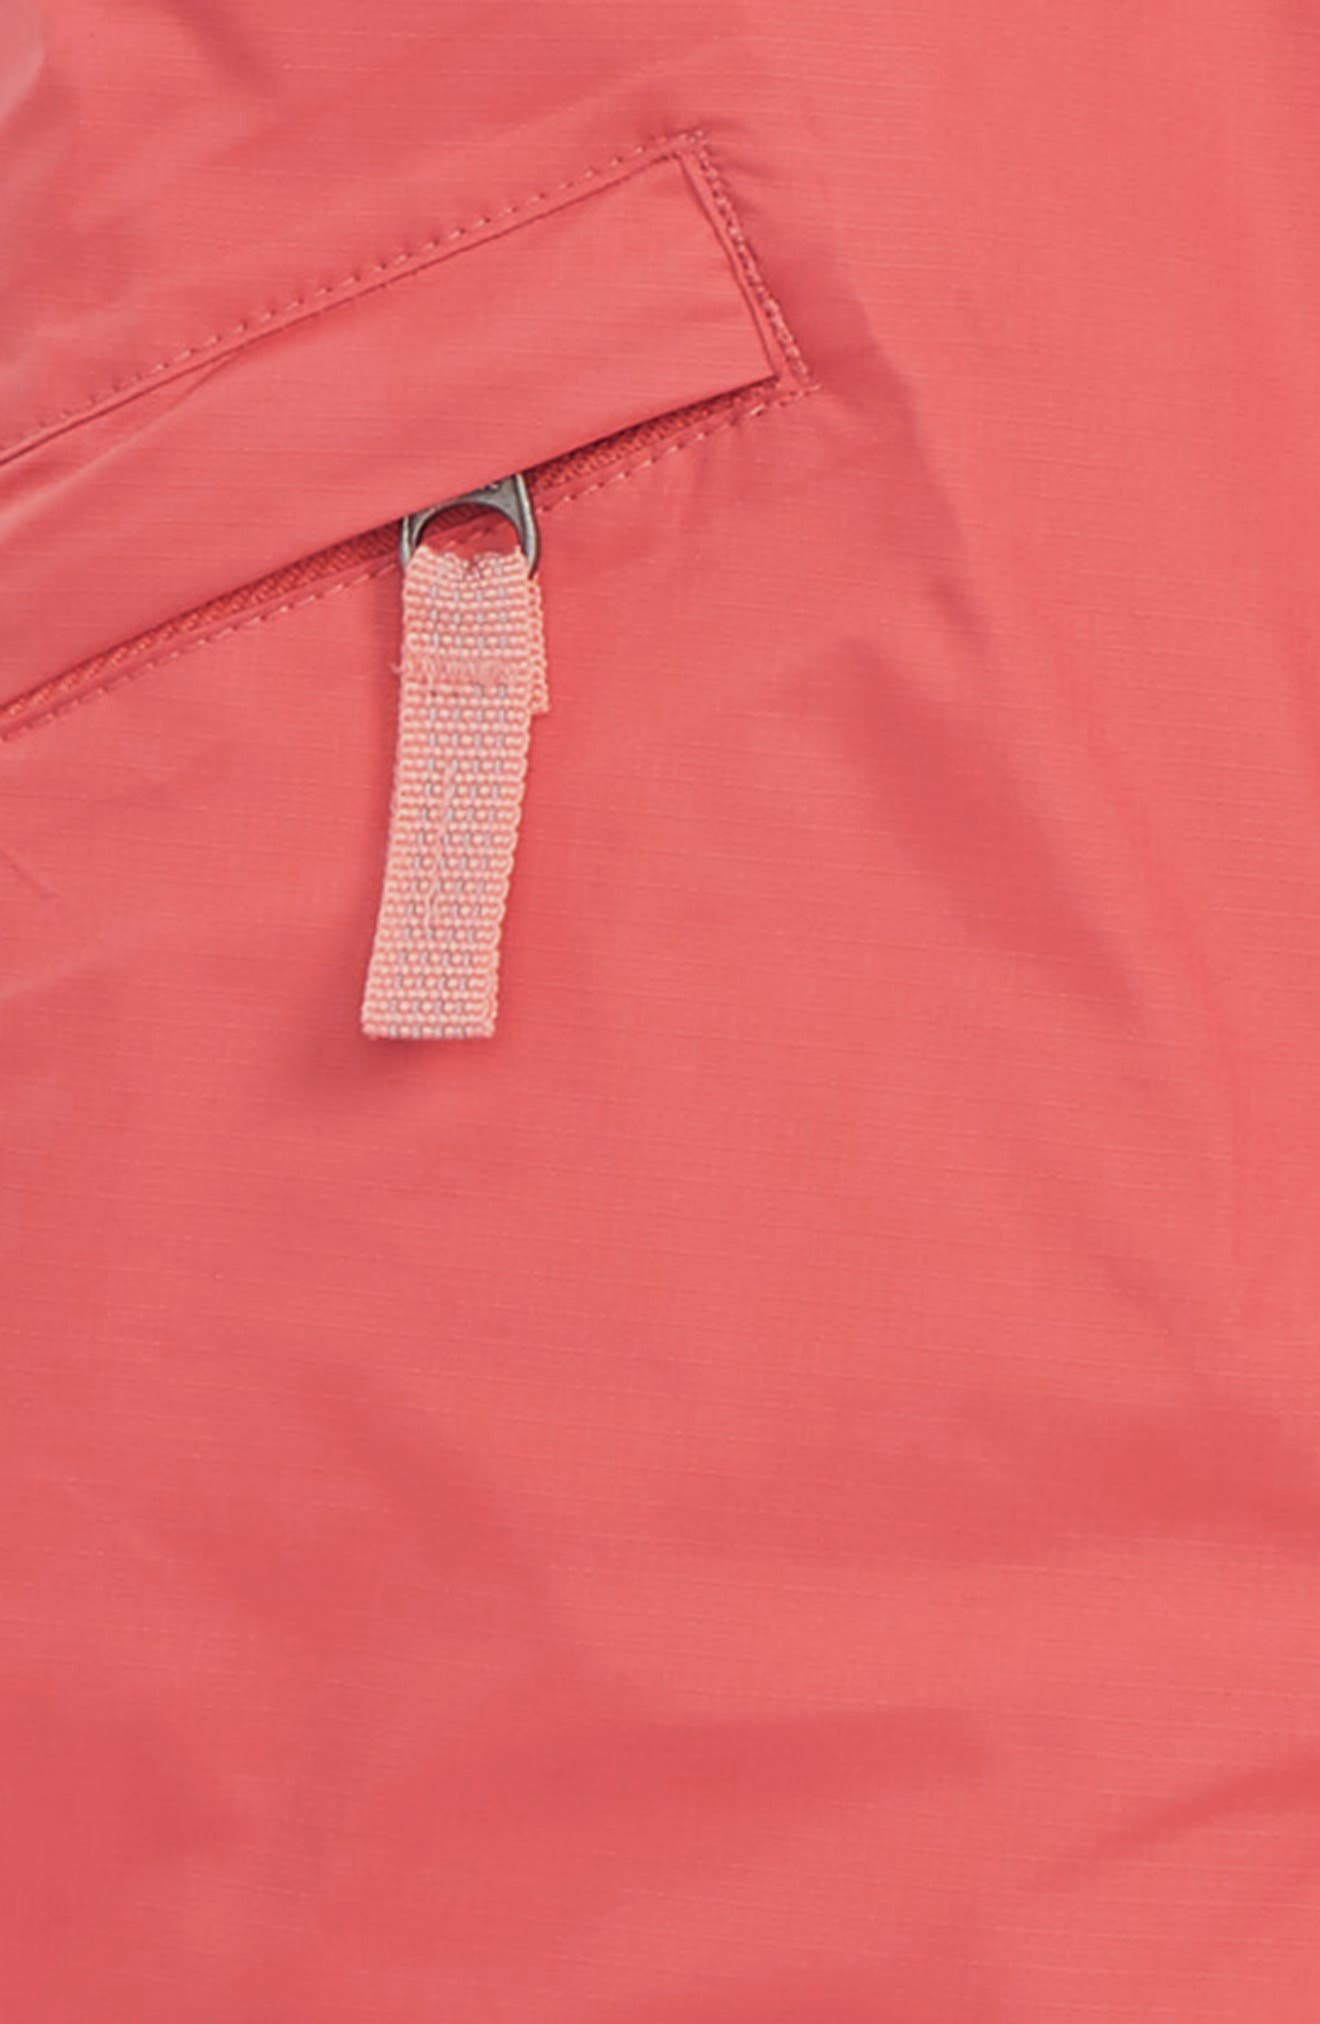 Snow Pile Waterproof Insulated Bib Overalls,                             Alternate thumbnail 2, color,                             SPCL SPICED CORAL